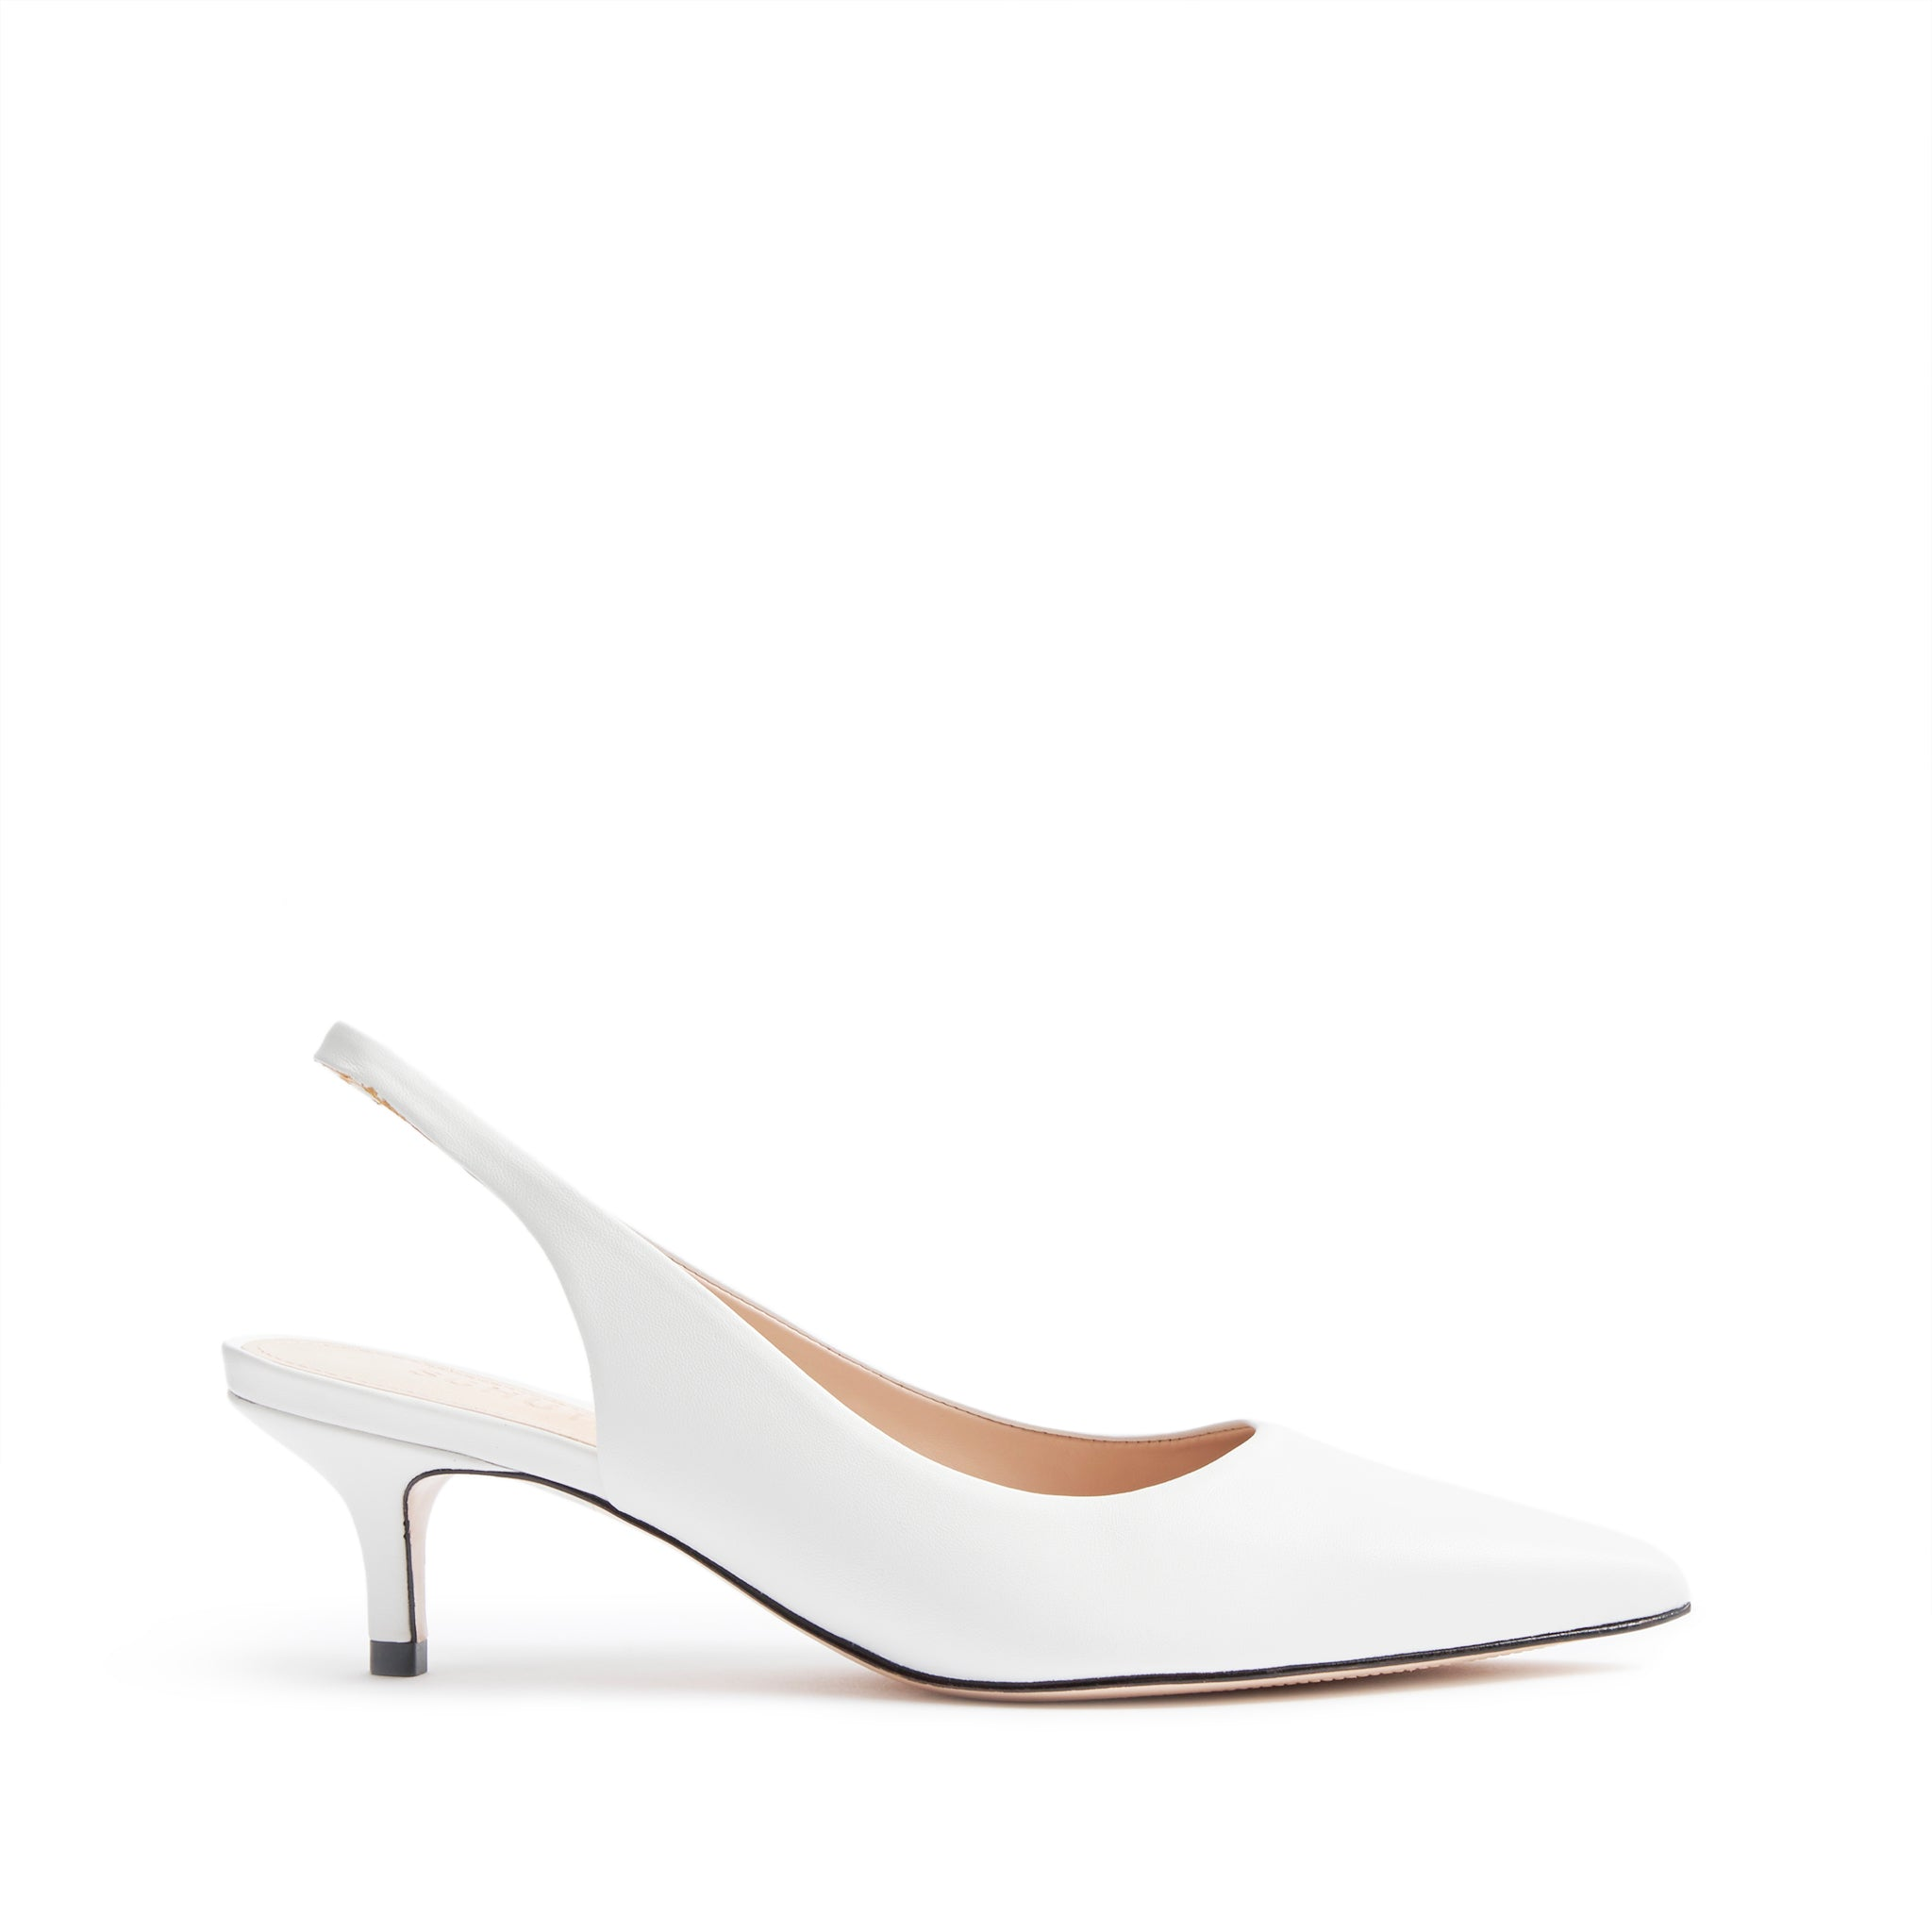 Cambrie Slingback Pumps White Leather